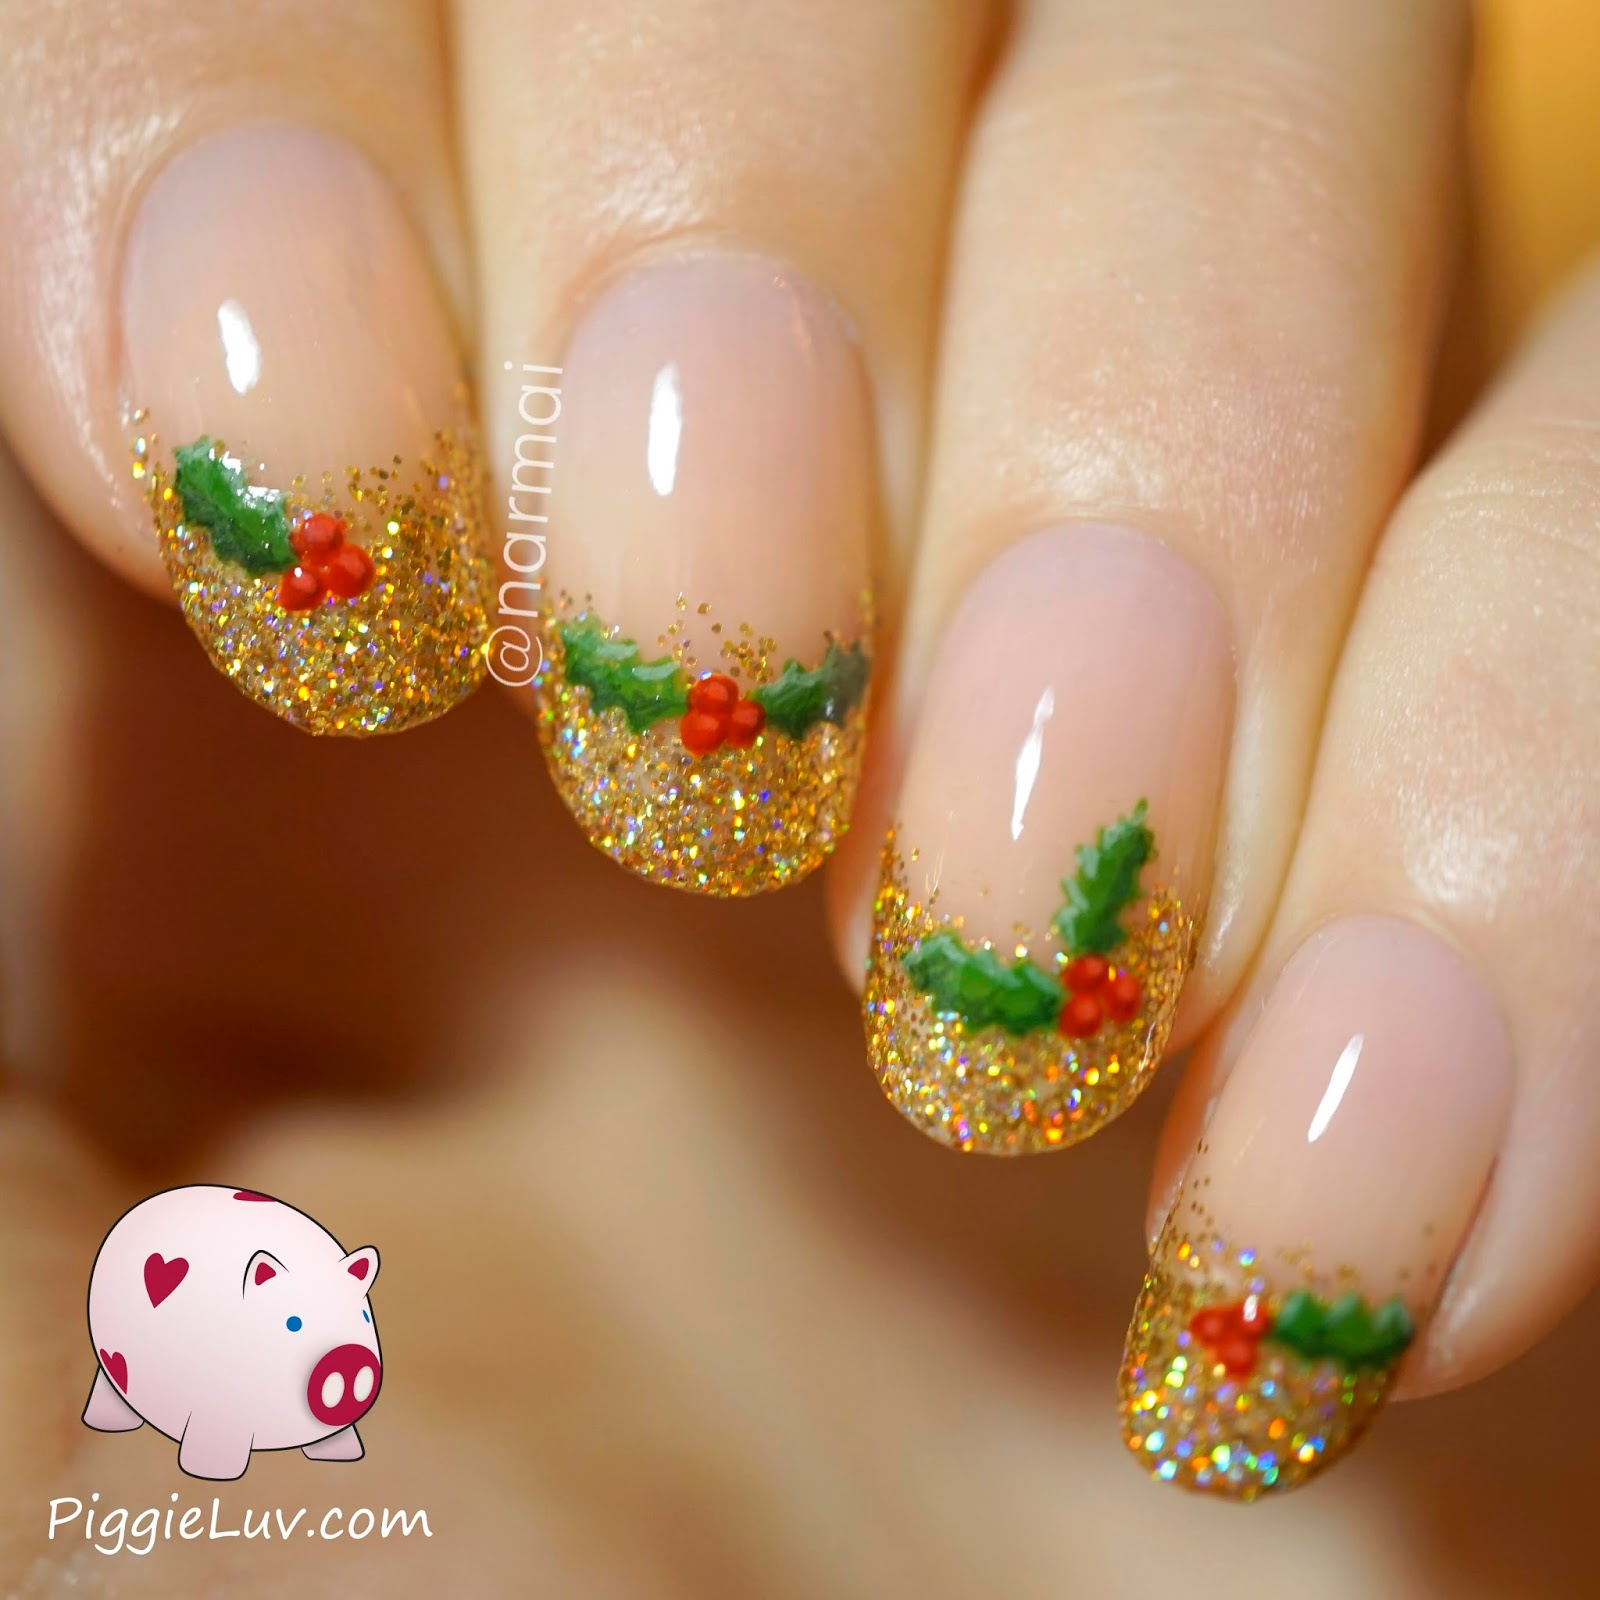 Piggieluv christmas holly nail art merry christmas to all of you i hope youre having a great time with family friends fur babies or other loved ones to those of you who dont prinsesfo Gallery